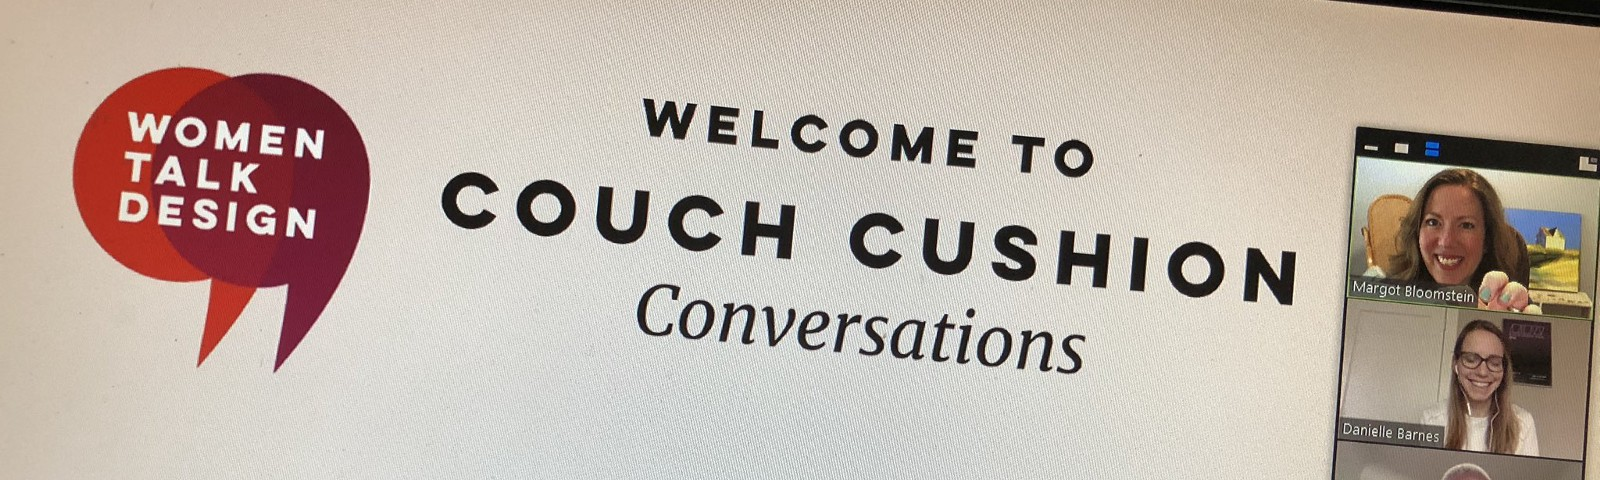 Photo o Couch Convo welcome screen with three speakers showing